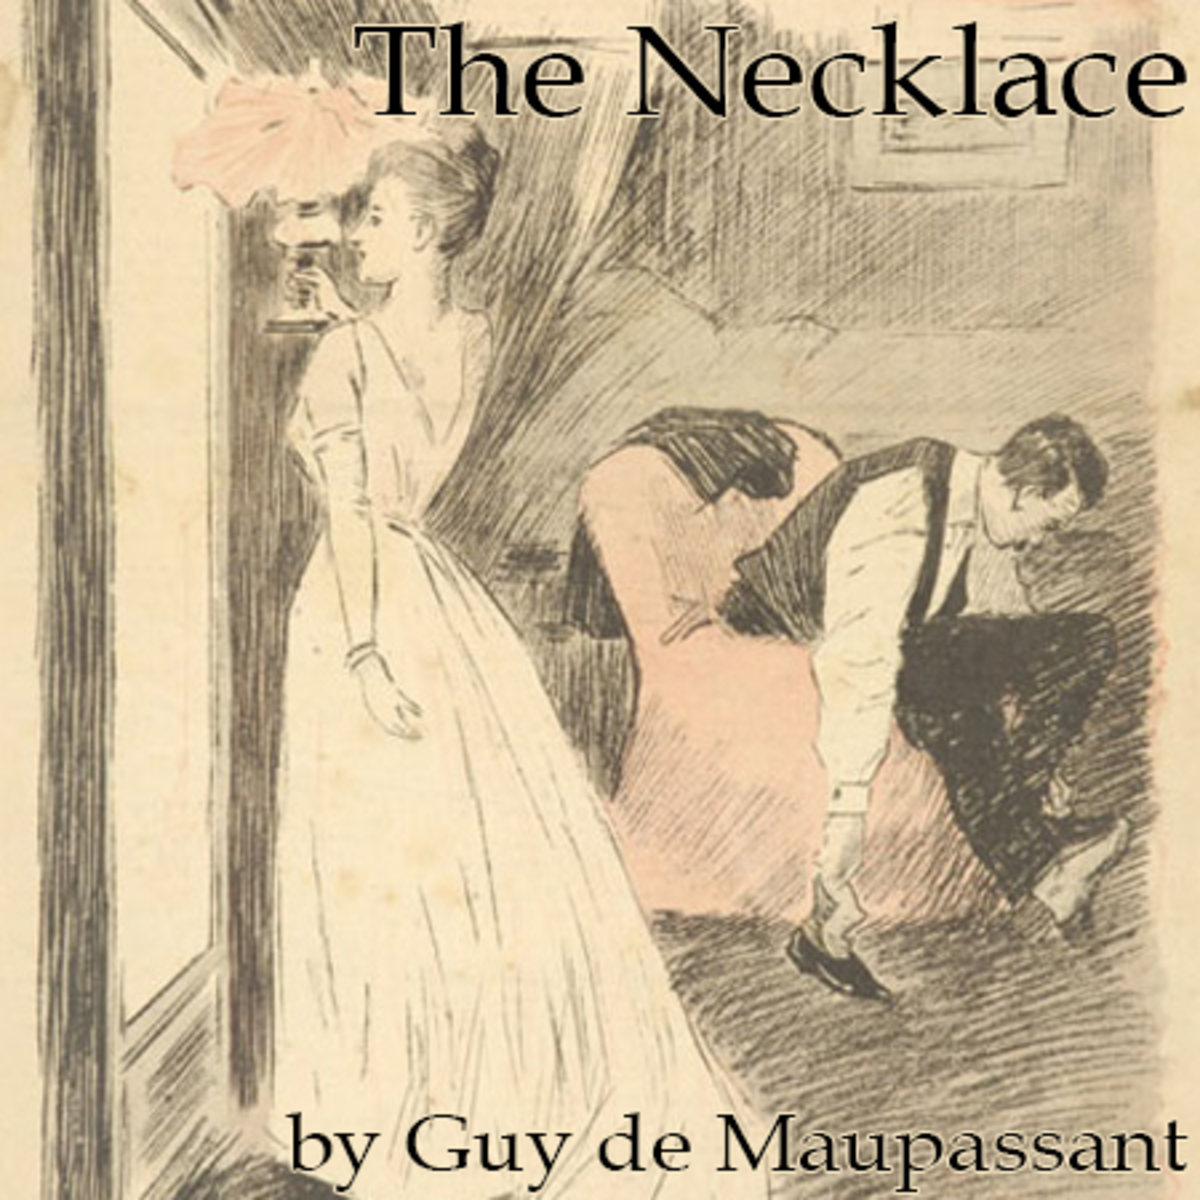 a literary analysis of the necklace by guy de maussapant The necklace - study guide the necklace is an ironic story about the distinction between appearance versus reality, written by guy de maupassant in 1884 we hope this study guide is particularly useful for teachers and students to appreciate the nuances of the story.